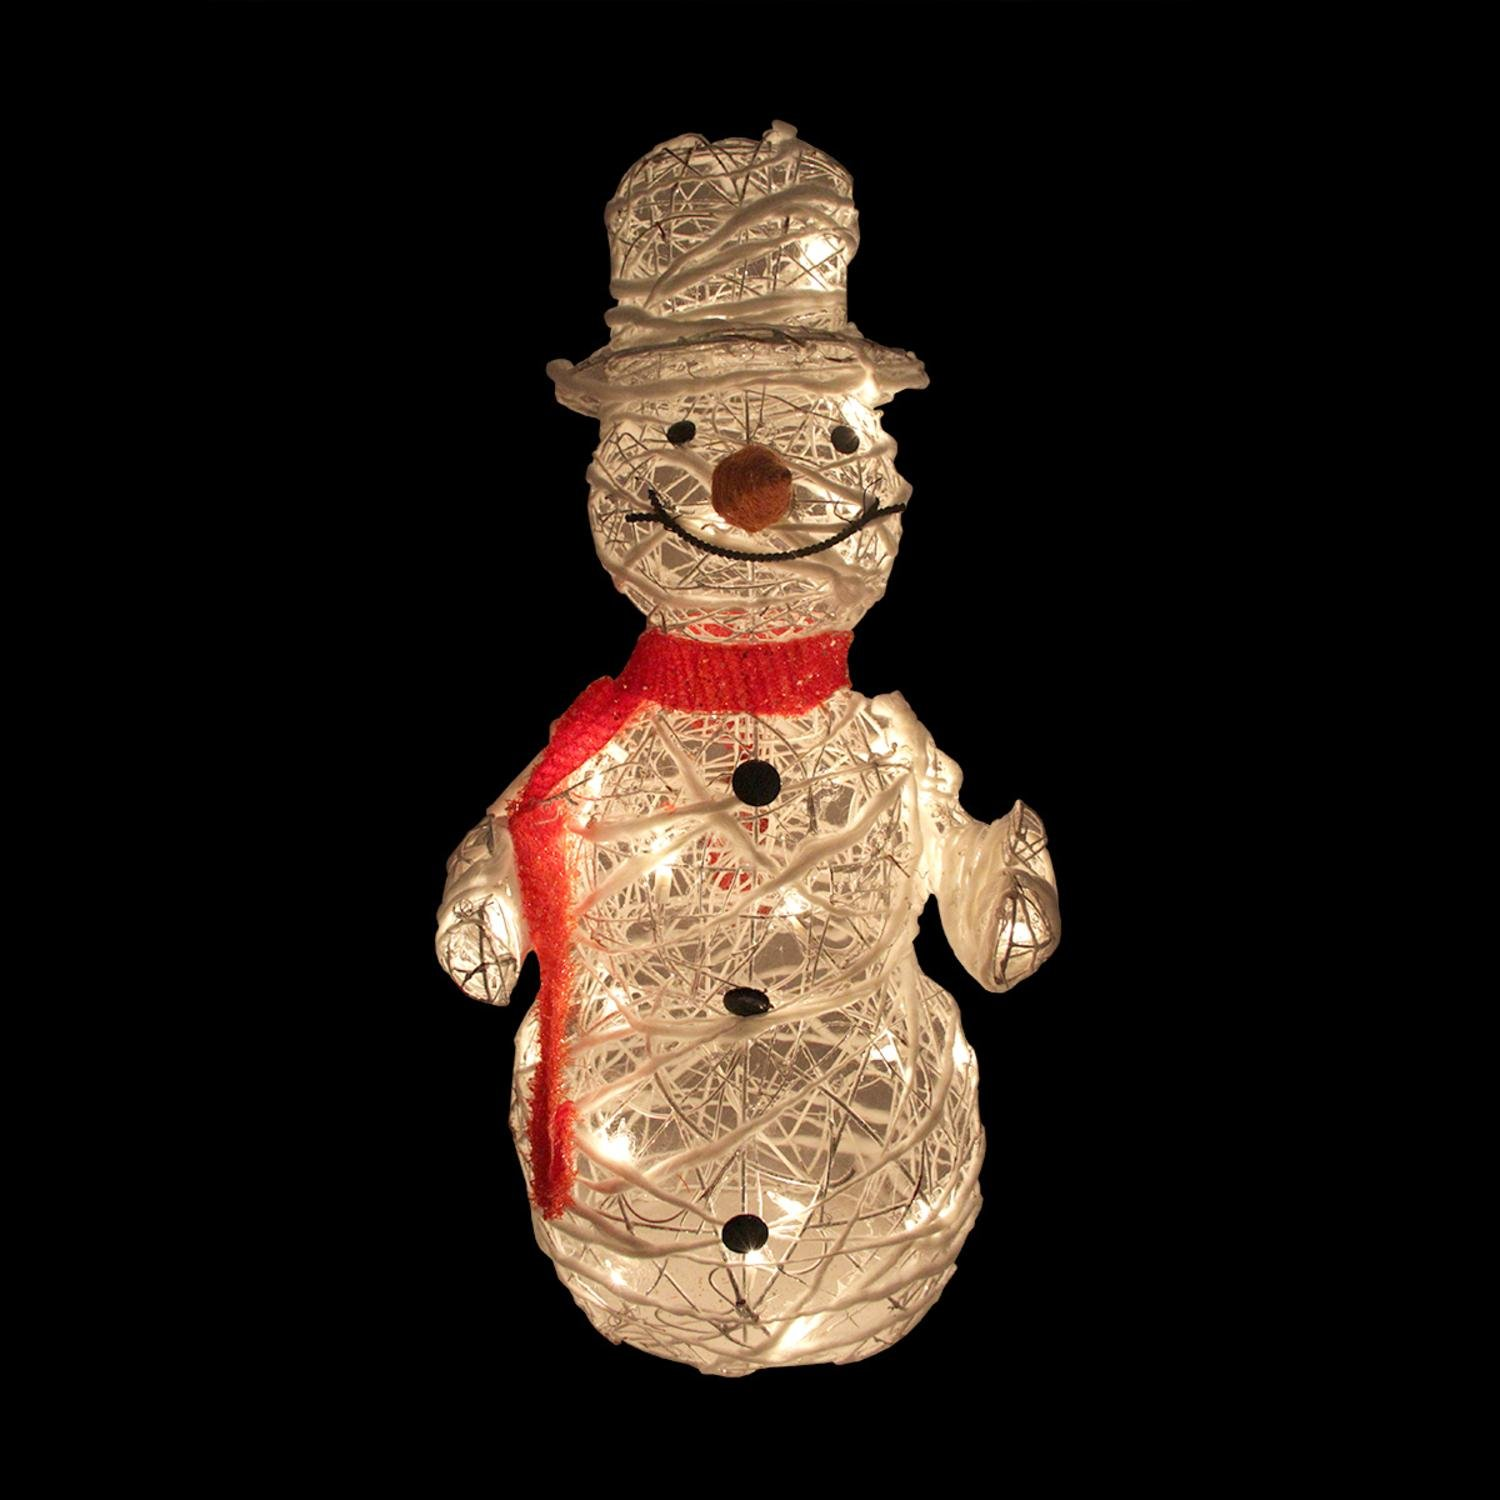 outdoor snowman Christmas decorations rattan design with silver glitter detail pre-lit with 35 lights